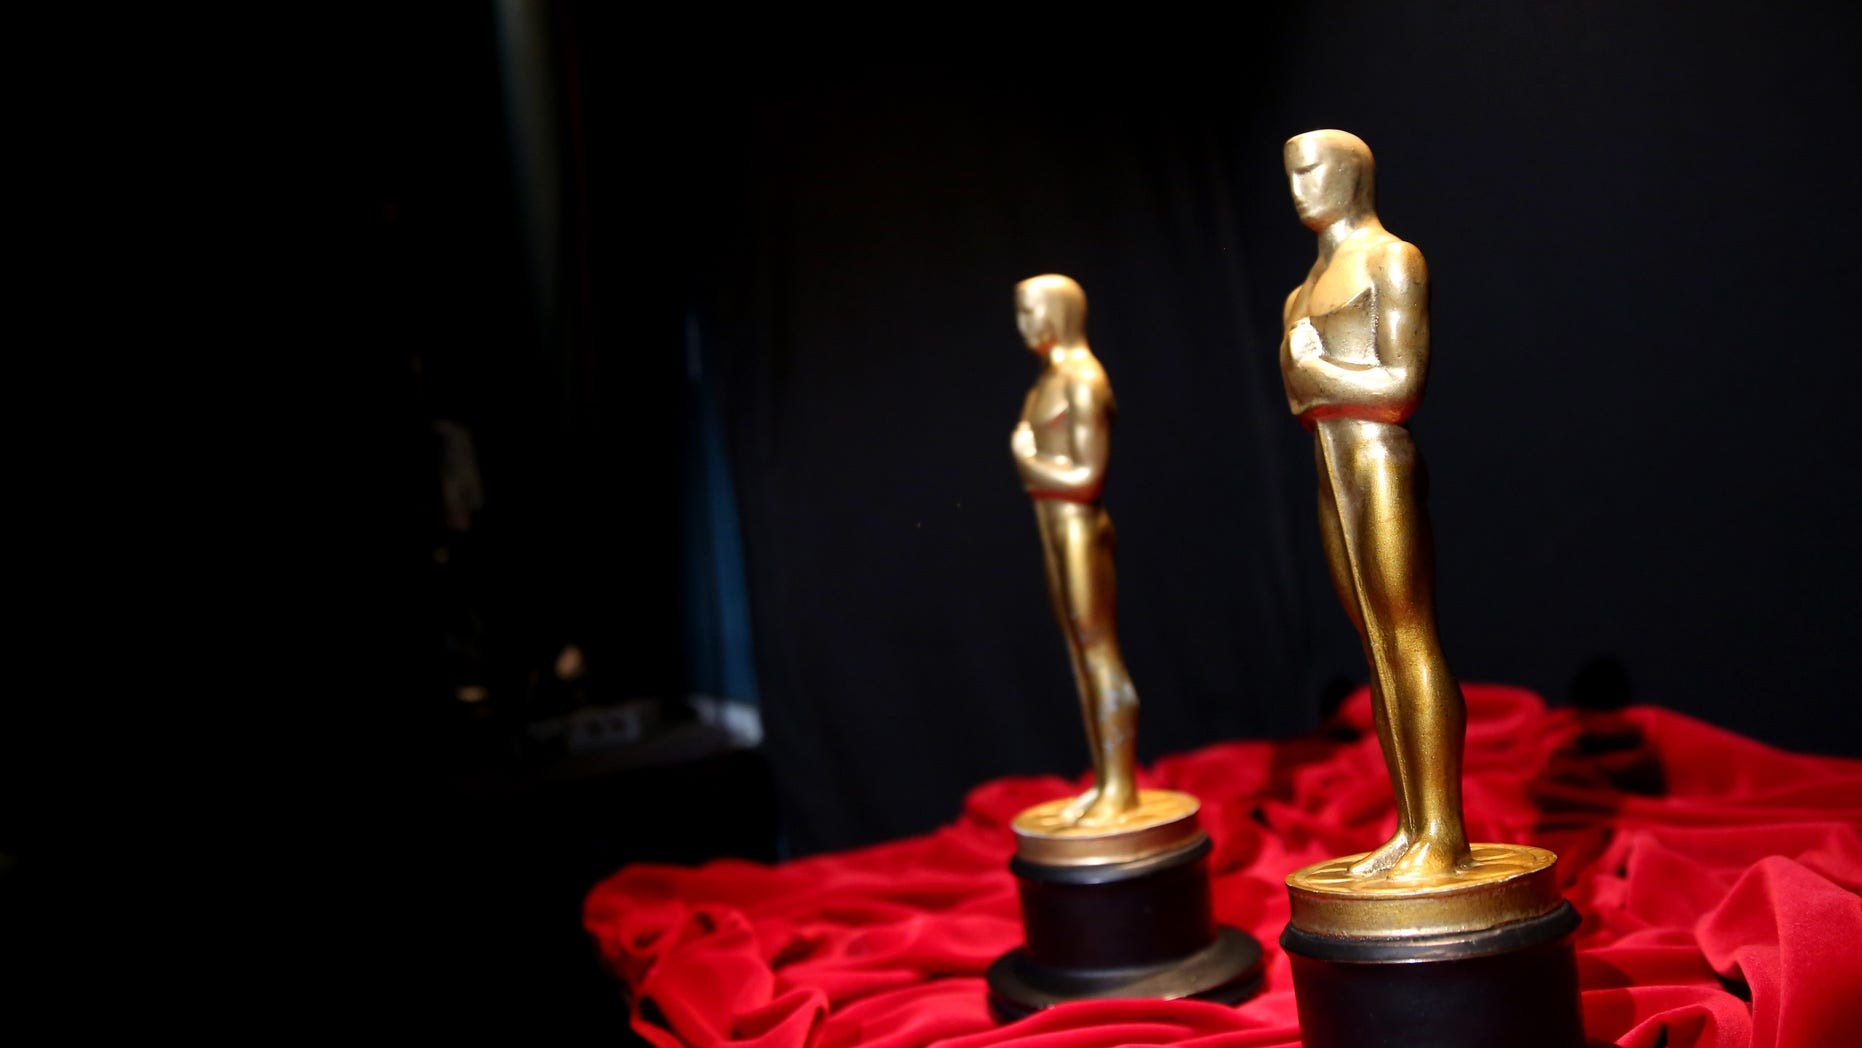 February 28, 2014. A pair of prop Oscars are seen backstage during rehearsals for the 86th Academy Awards in Los Angeles.The Academy Awards will be held at the Dolby Theatre on Sunday, March 2.